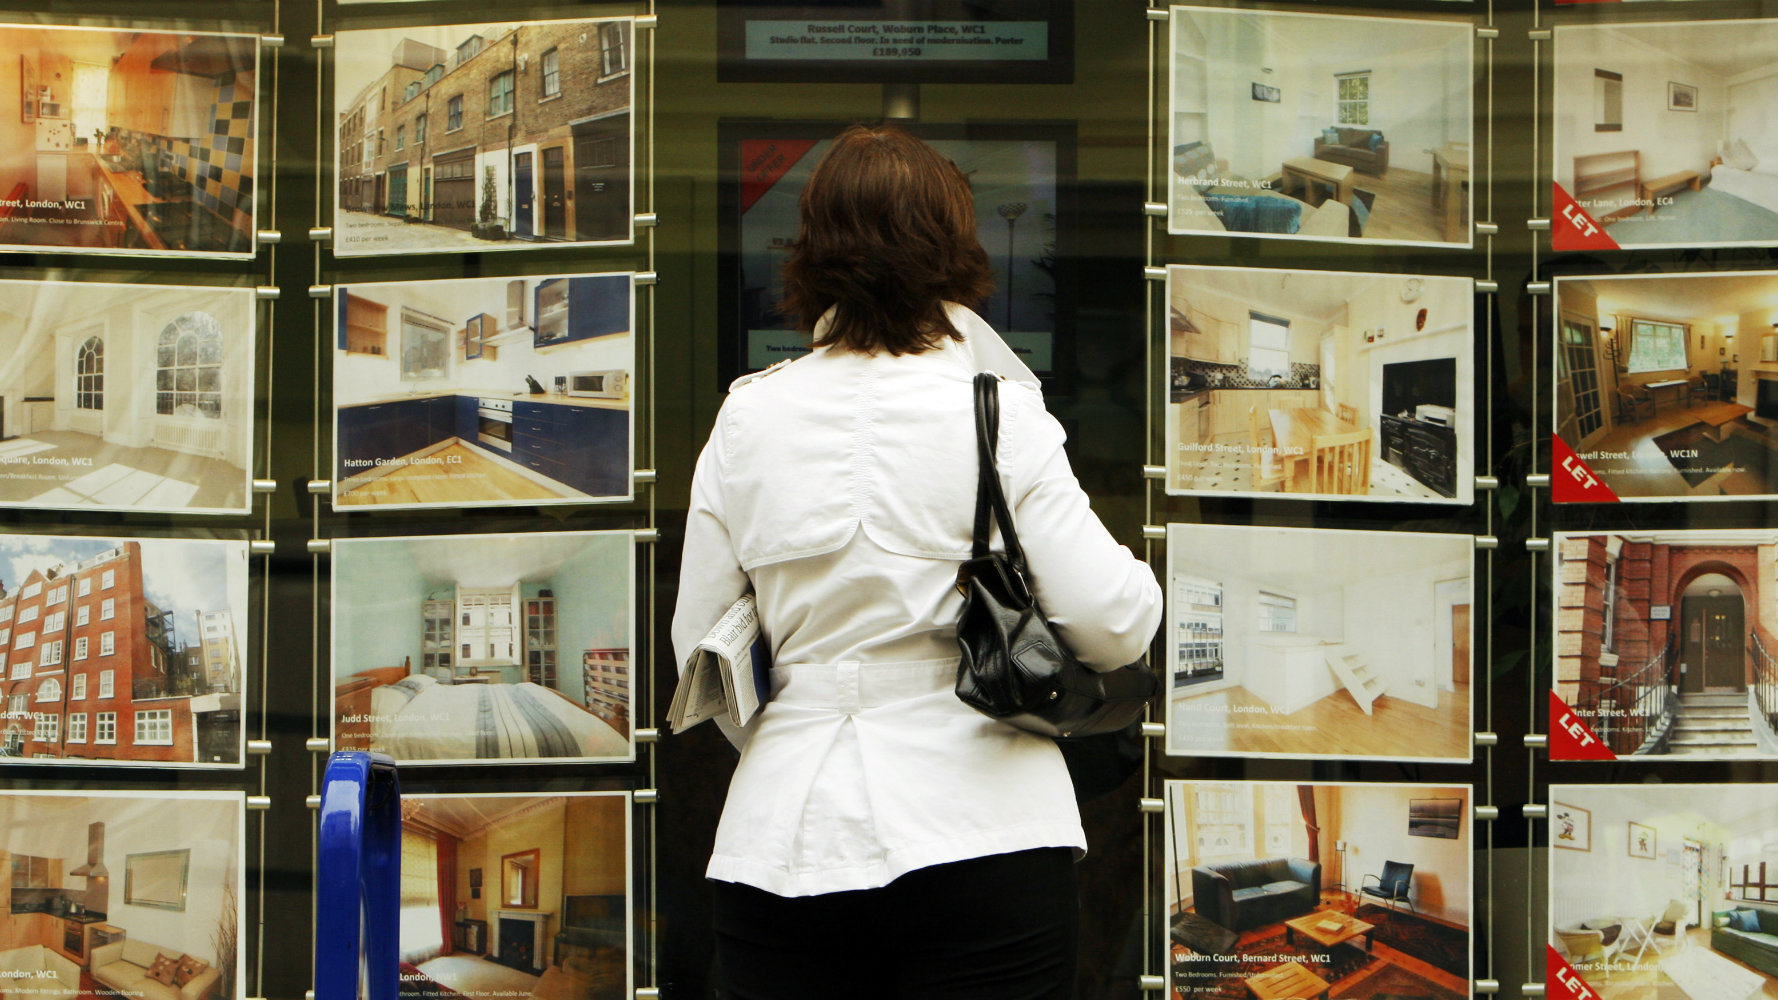 A woman looks at properties for sale in the window of an estate agent in central London.